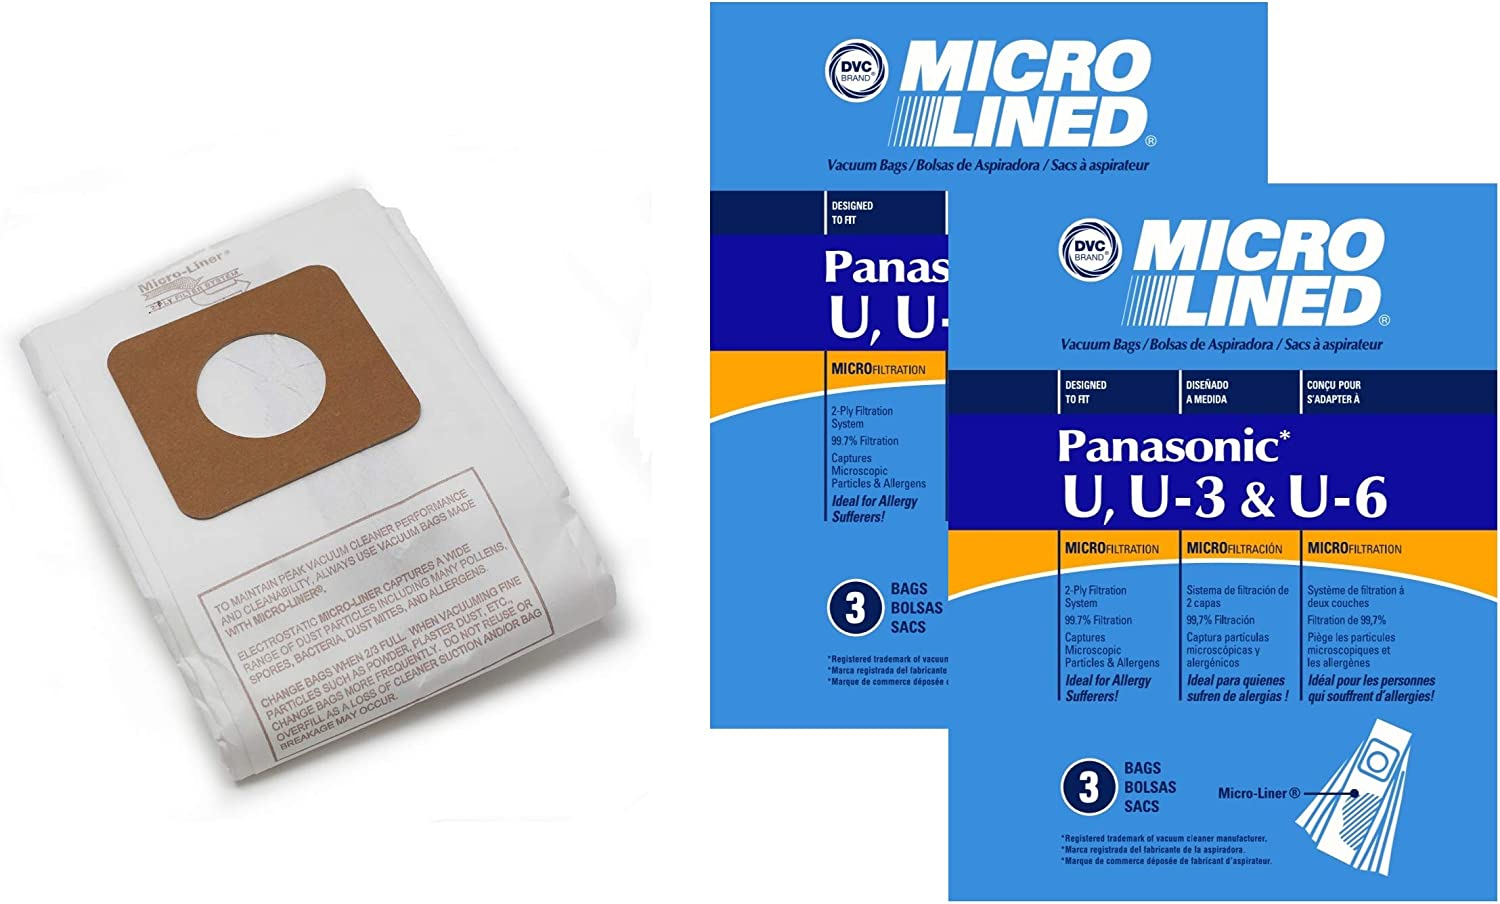 DVC Micro-Lined Paper Replacement Bags Style U, U-3, and U-6 Fit Panasonic Models MC-V5100, 5200, 5300, 5500, 6200, 6300, 6600, 6700, 6800, 6900-6 Bags